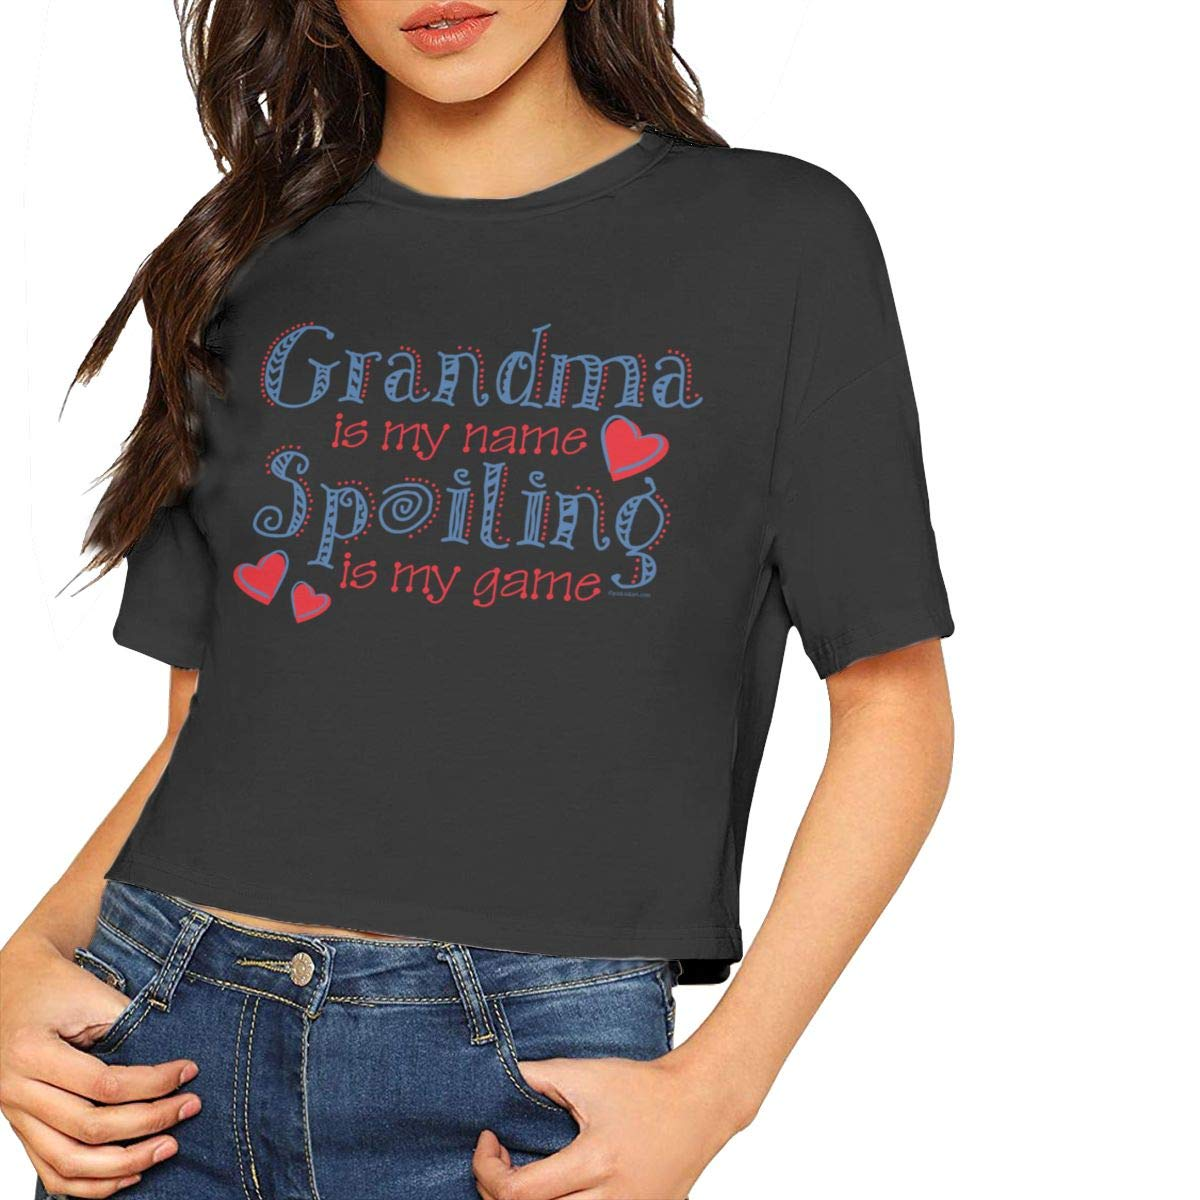 Grandma is My Name Spoiling is My Game Navel T-Shirt Crop